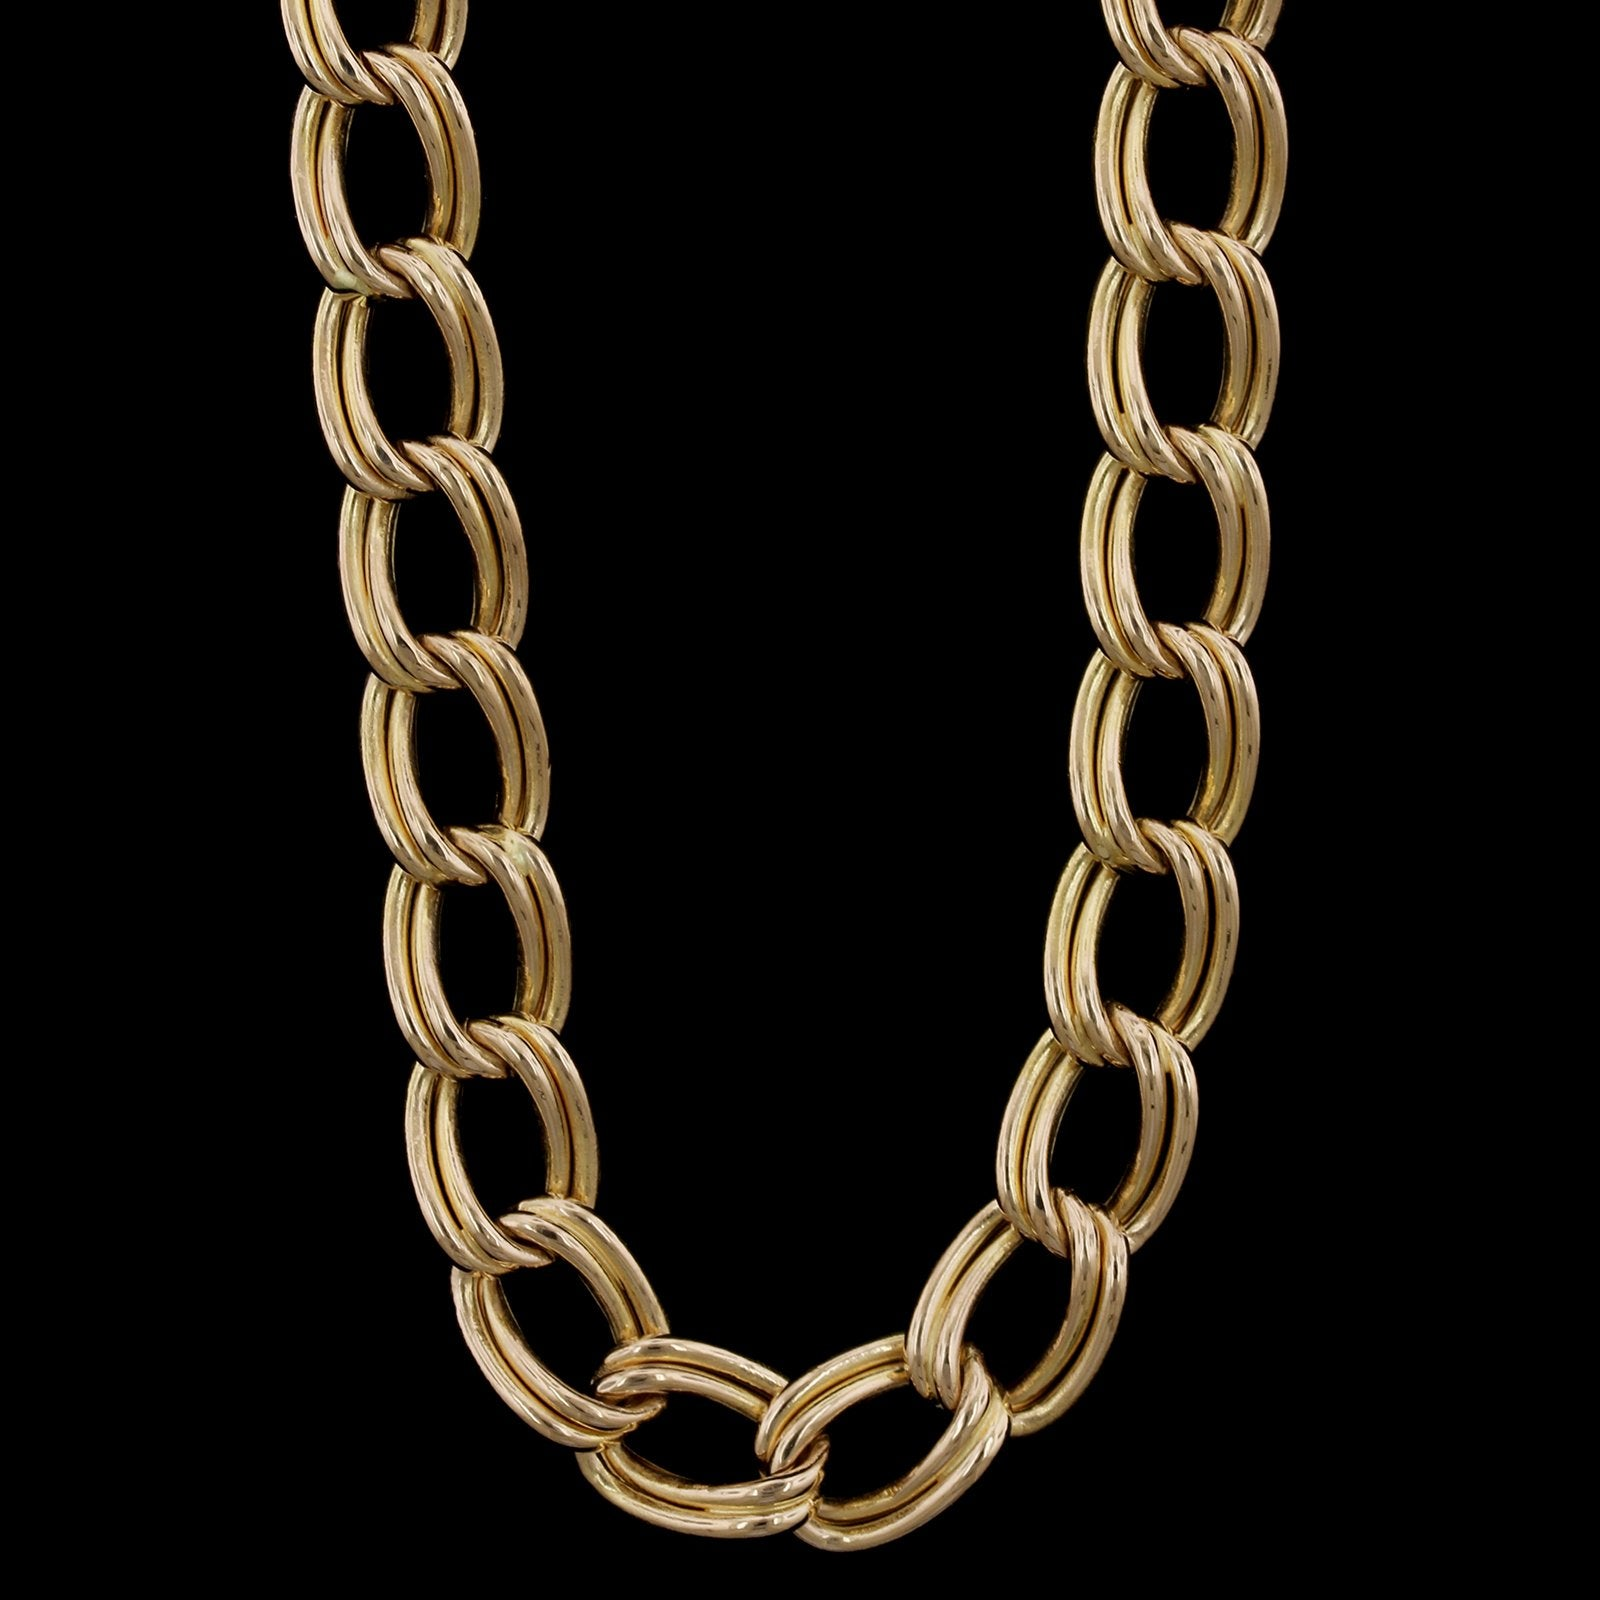 14K Yellow Gold Estate Double Link Necklace